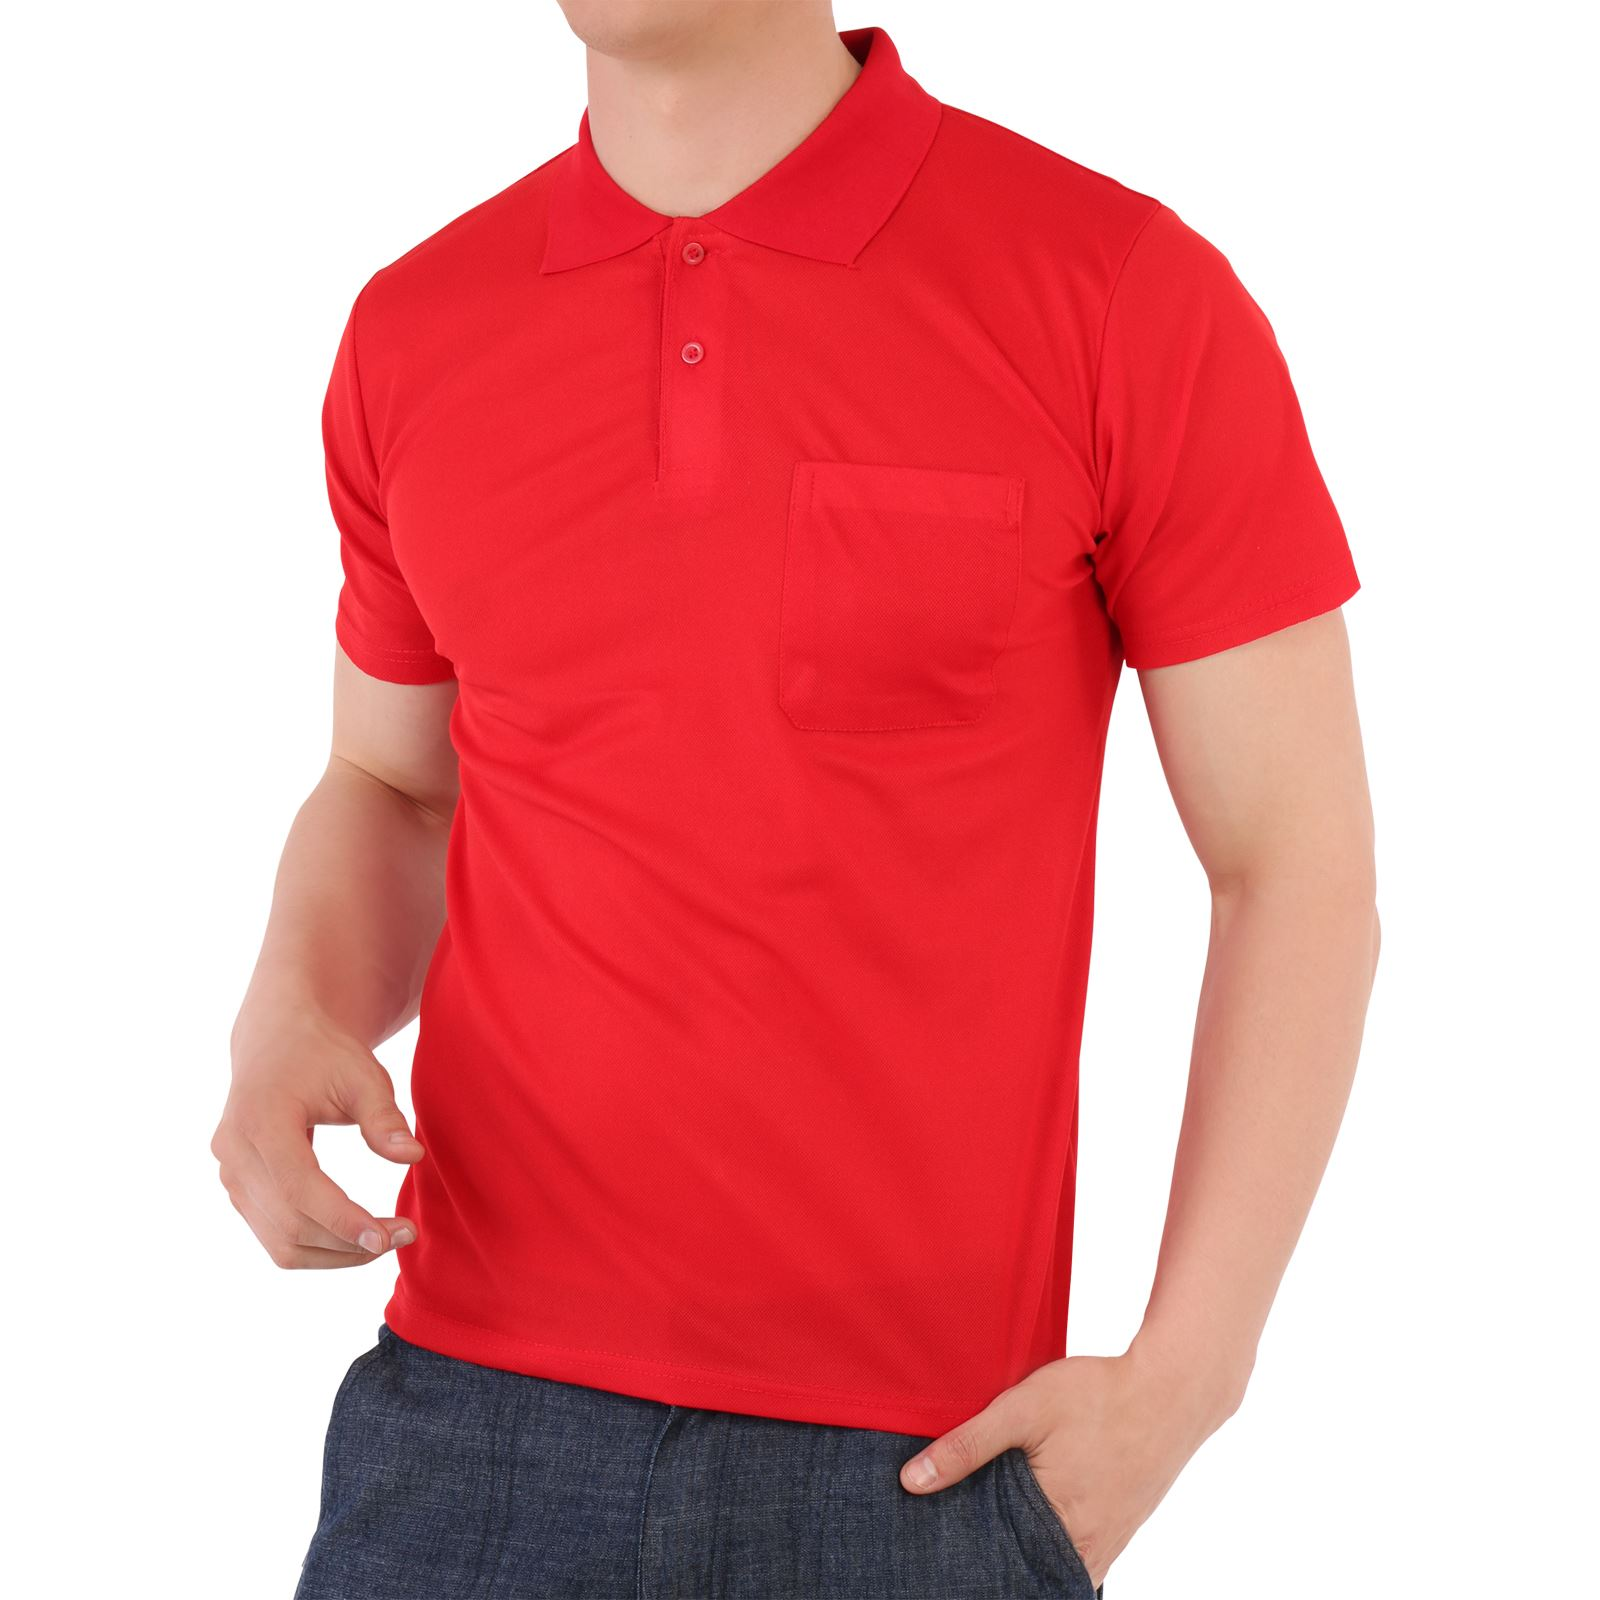 Shop men's polo shirts in a range of colours at Cotton On. Perfect dressed up, or down! Free delivery on all orders over $